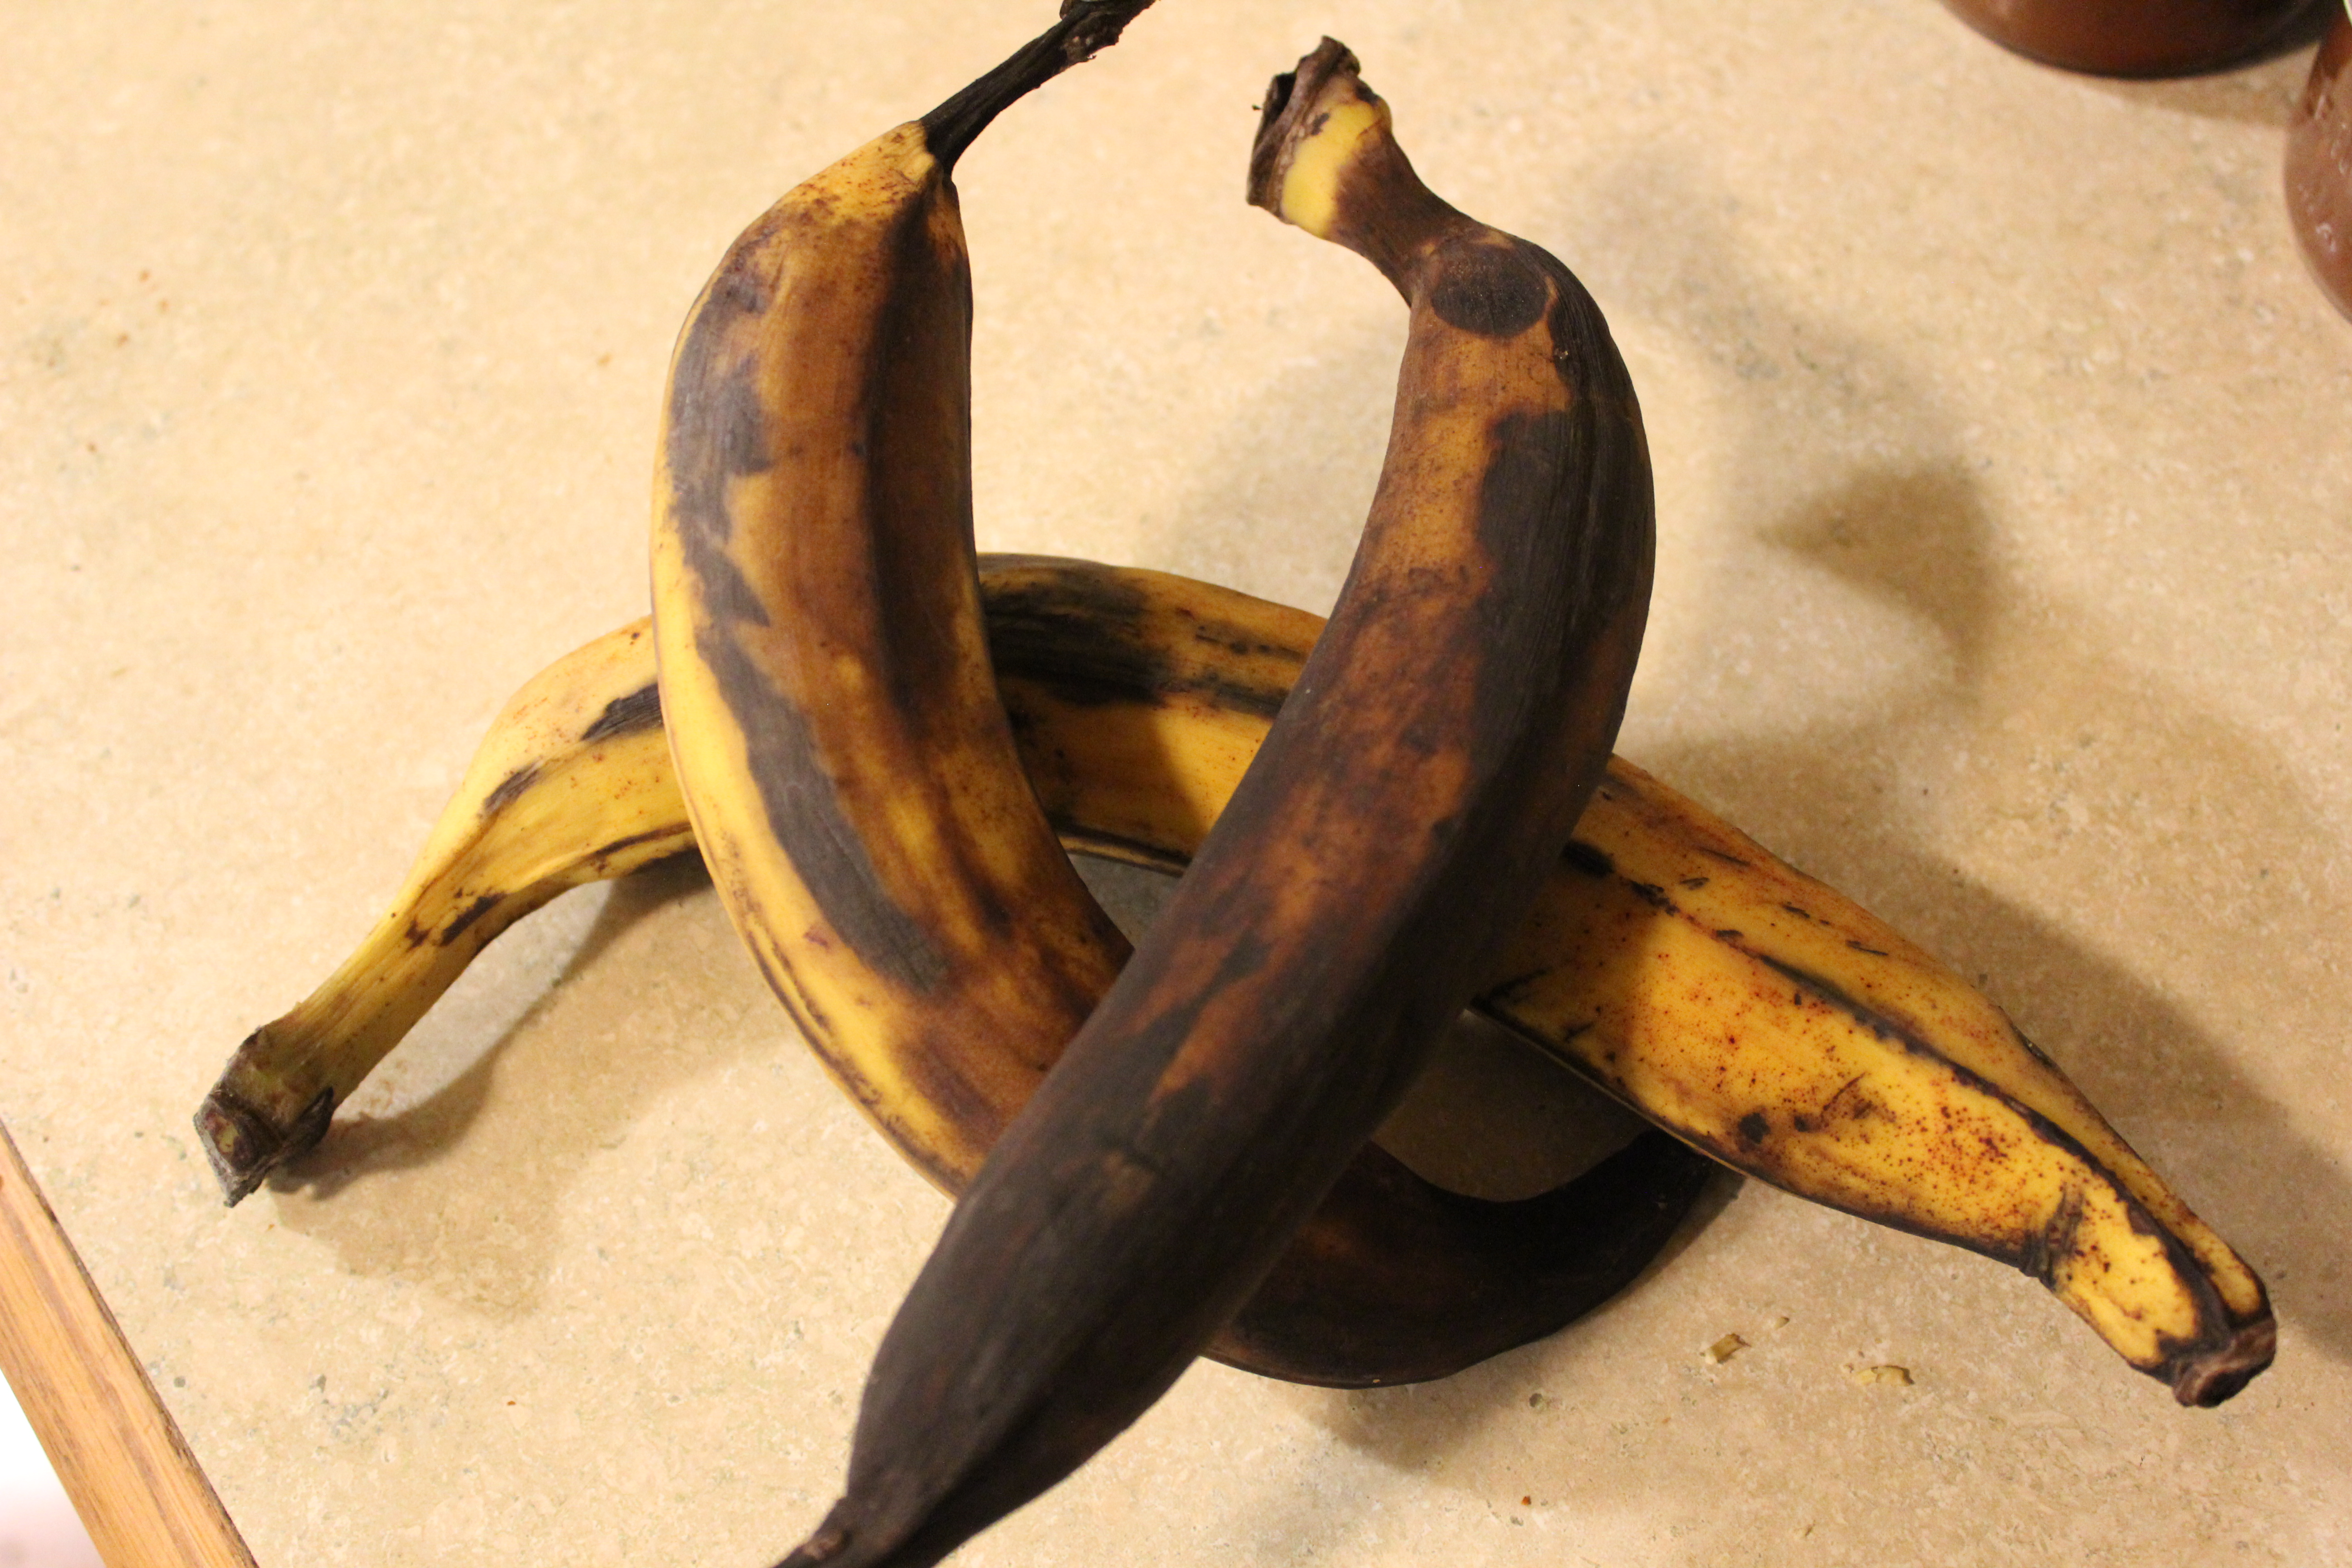 Recipe: Banana Leather (Flattened Dried Bananas) | Get Outside